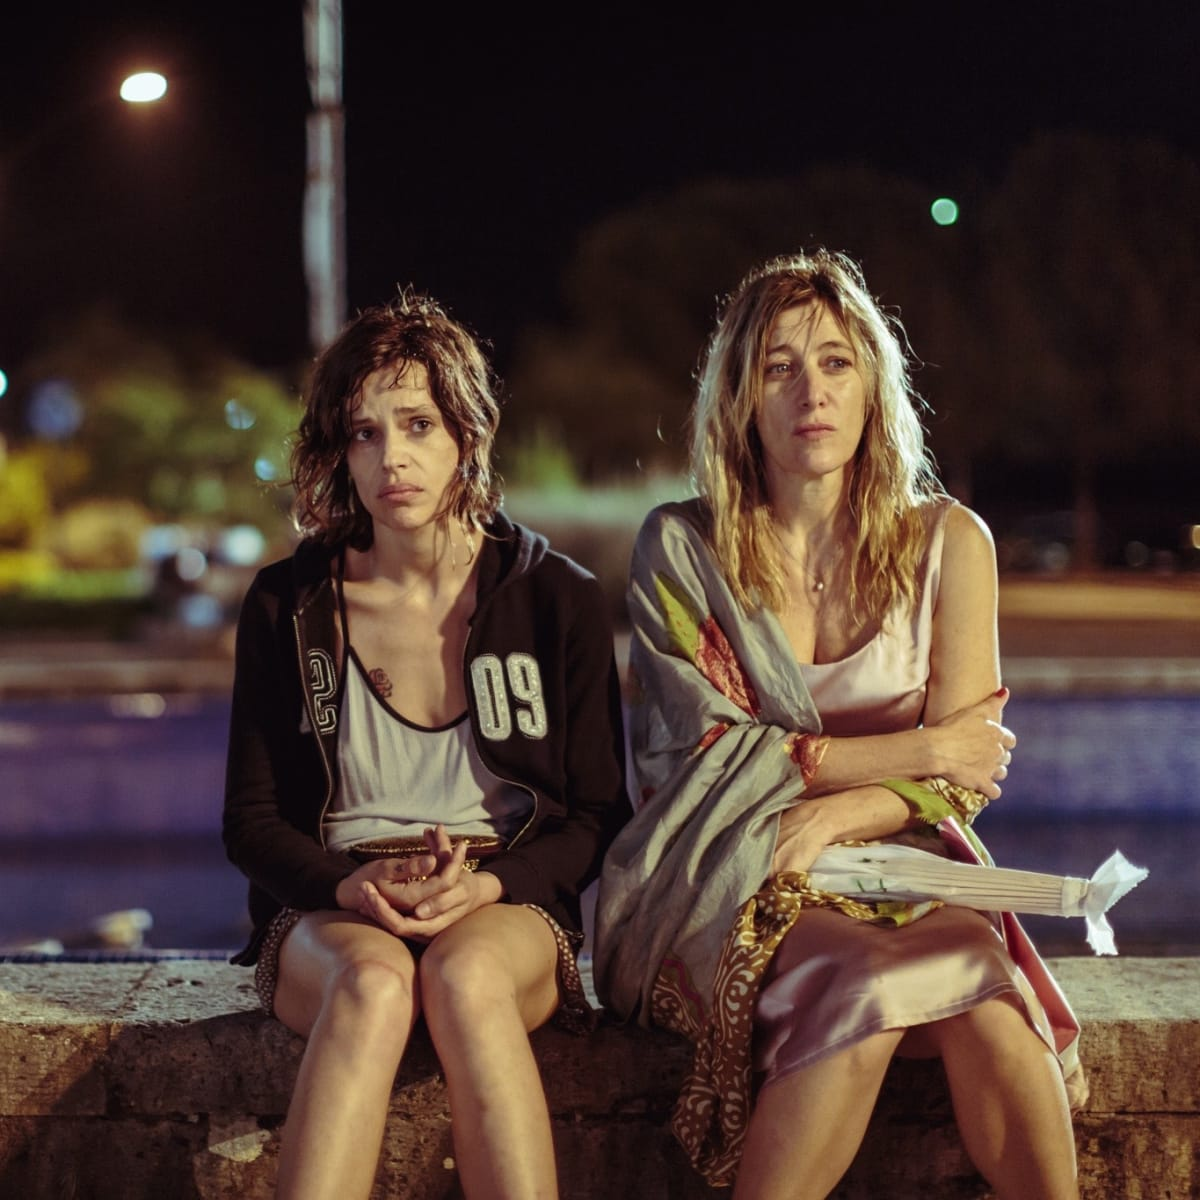 Like Crazy (La pazza gioia) at Umbria in Sugar Land Film Festival